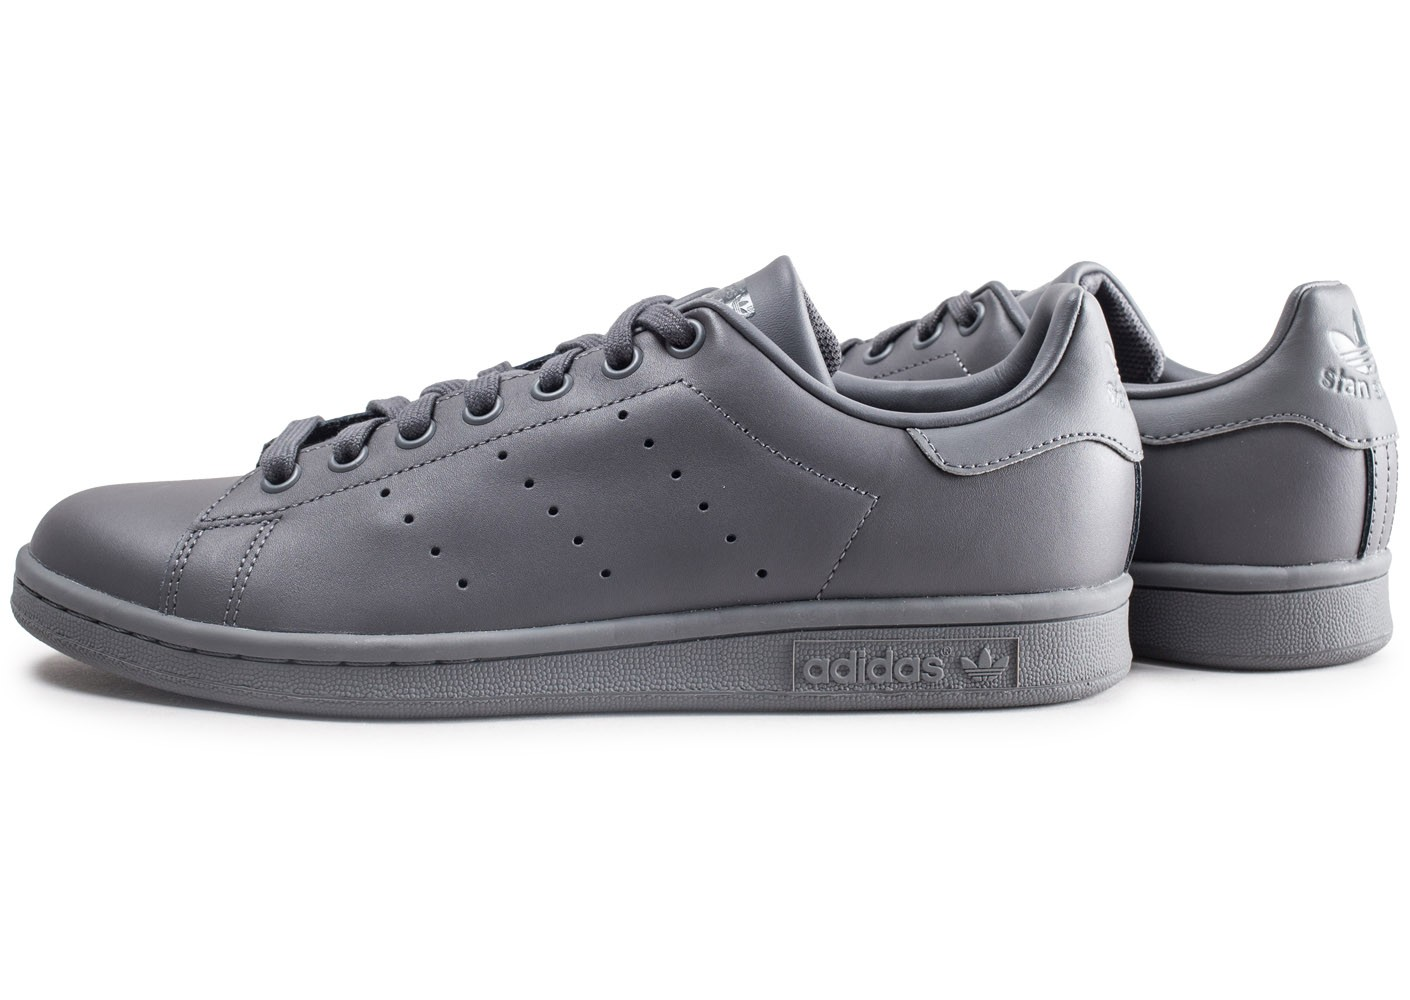 adidas Stan Smith grise Chaussures Baskets homme Chausport